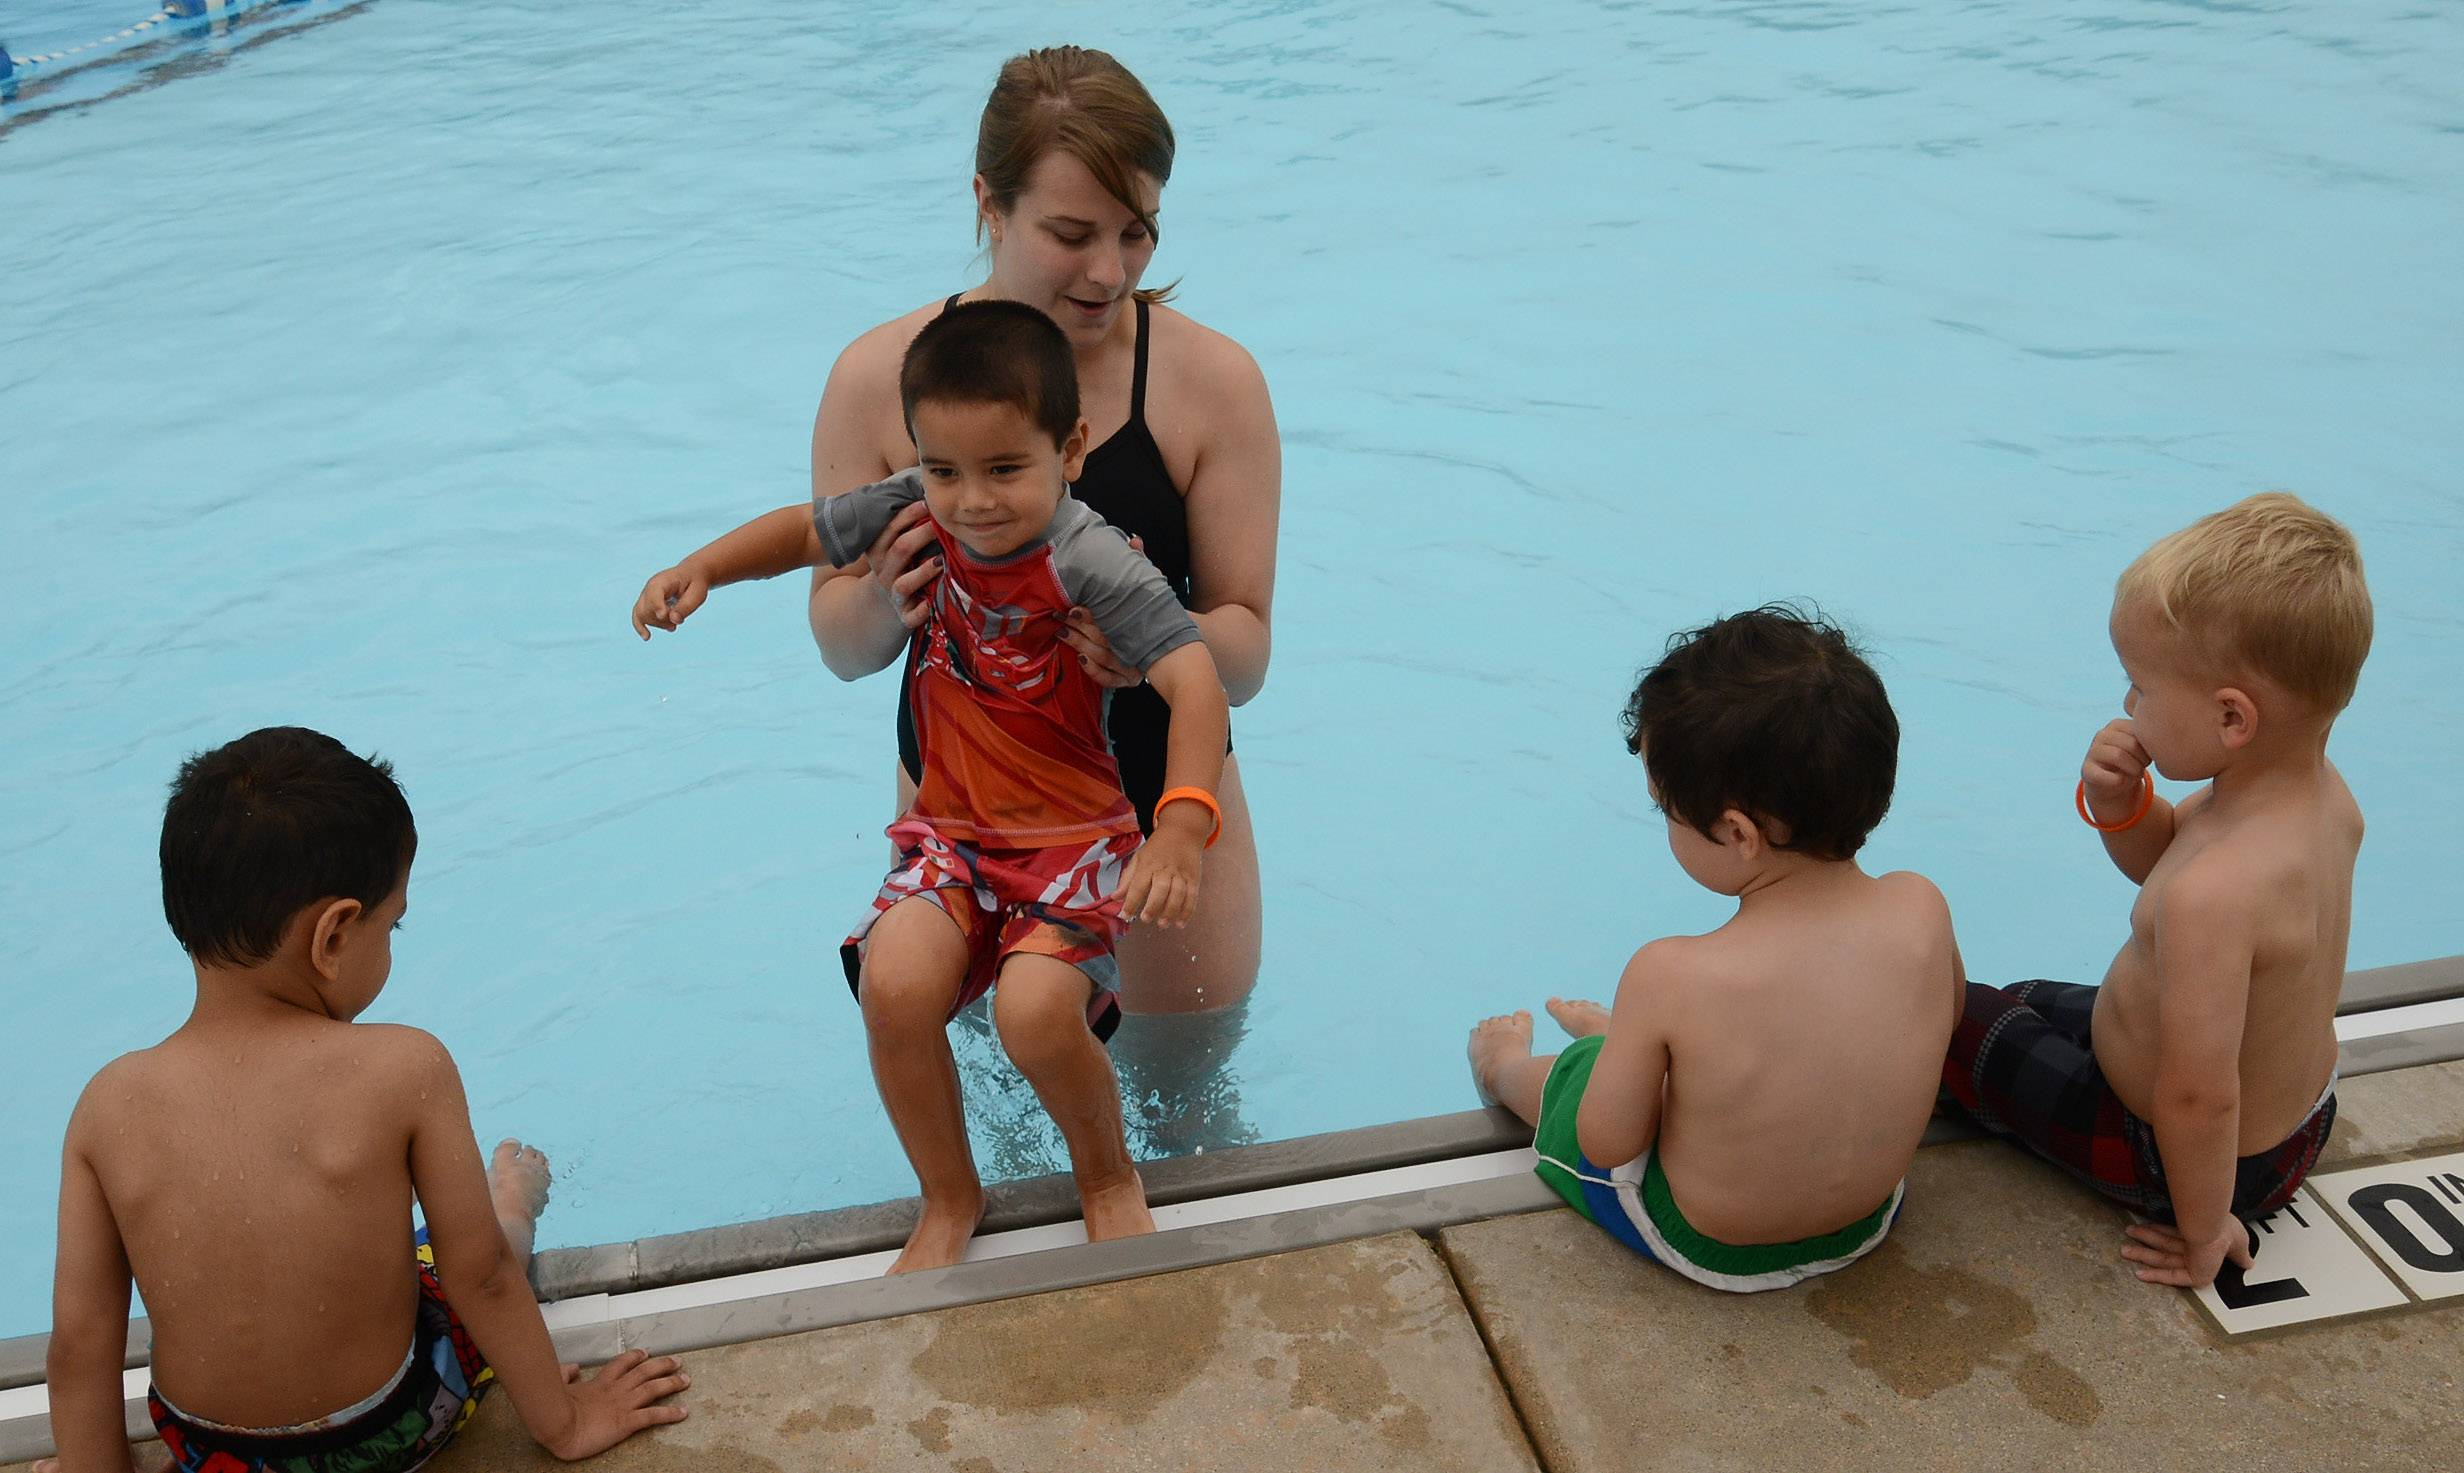 From left, Luke Shamon, Julian Rice, Brady Klevens, and Owen Goodfellow, all 3, and all from Gurnee, get a swim lesson from instructor Haley Brown during The World's Largest Swimming Lesson at the Hunt Club Park Aquatic Center in Gurnee.